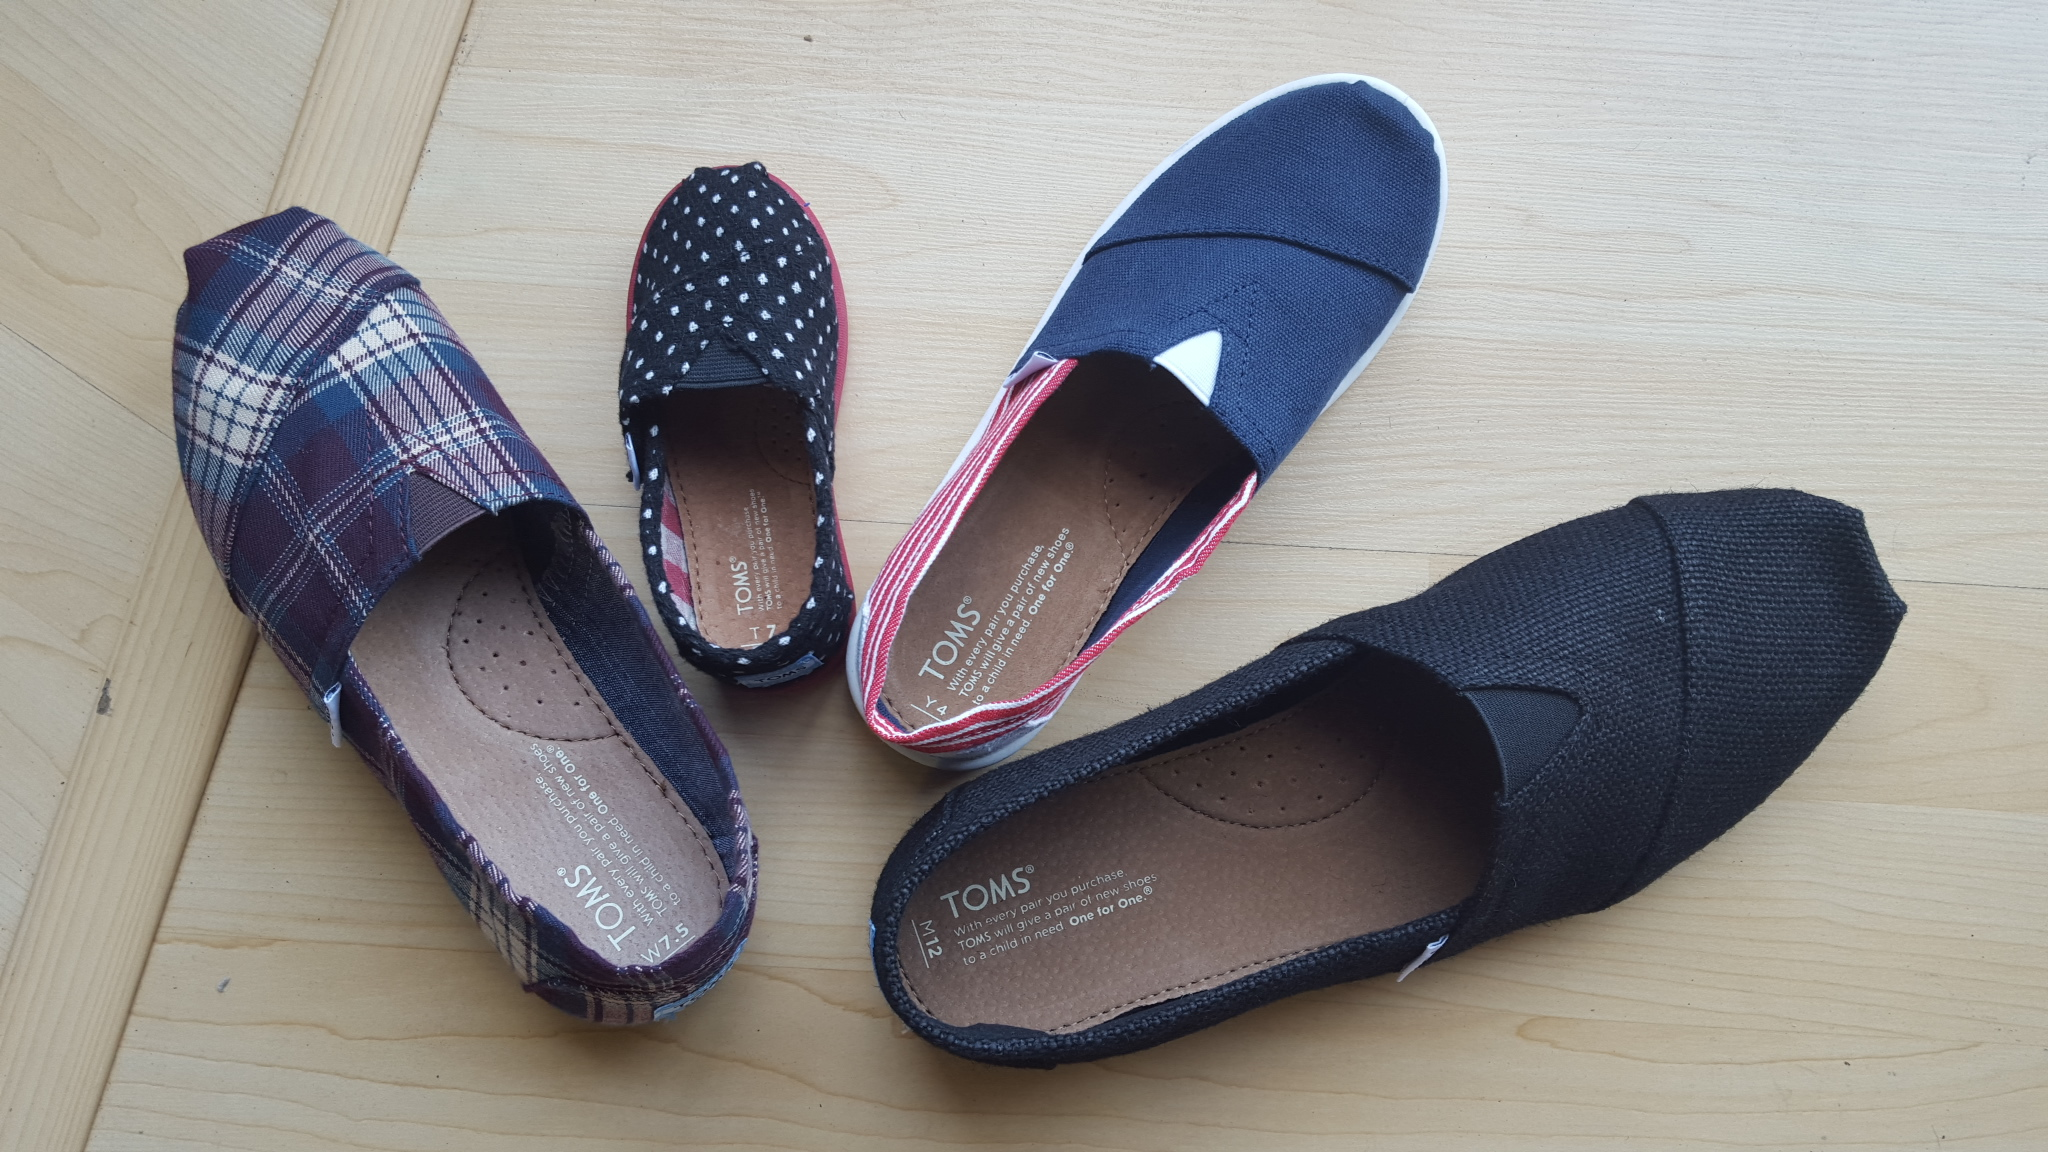 Toms shoes sizing guide finding the right size dresscodeclothing